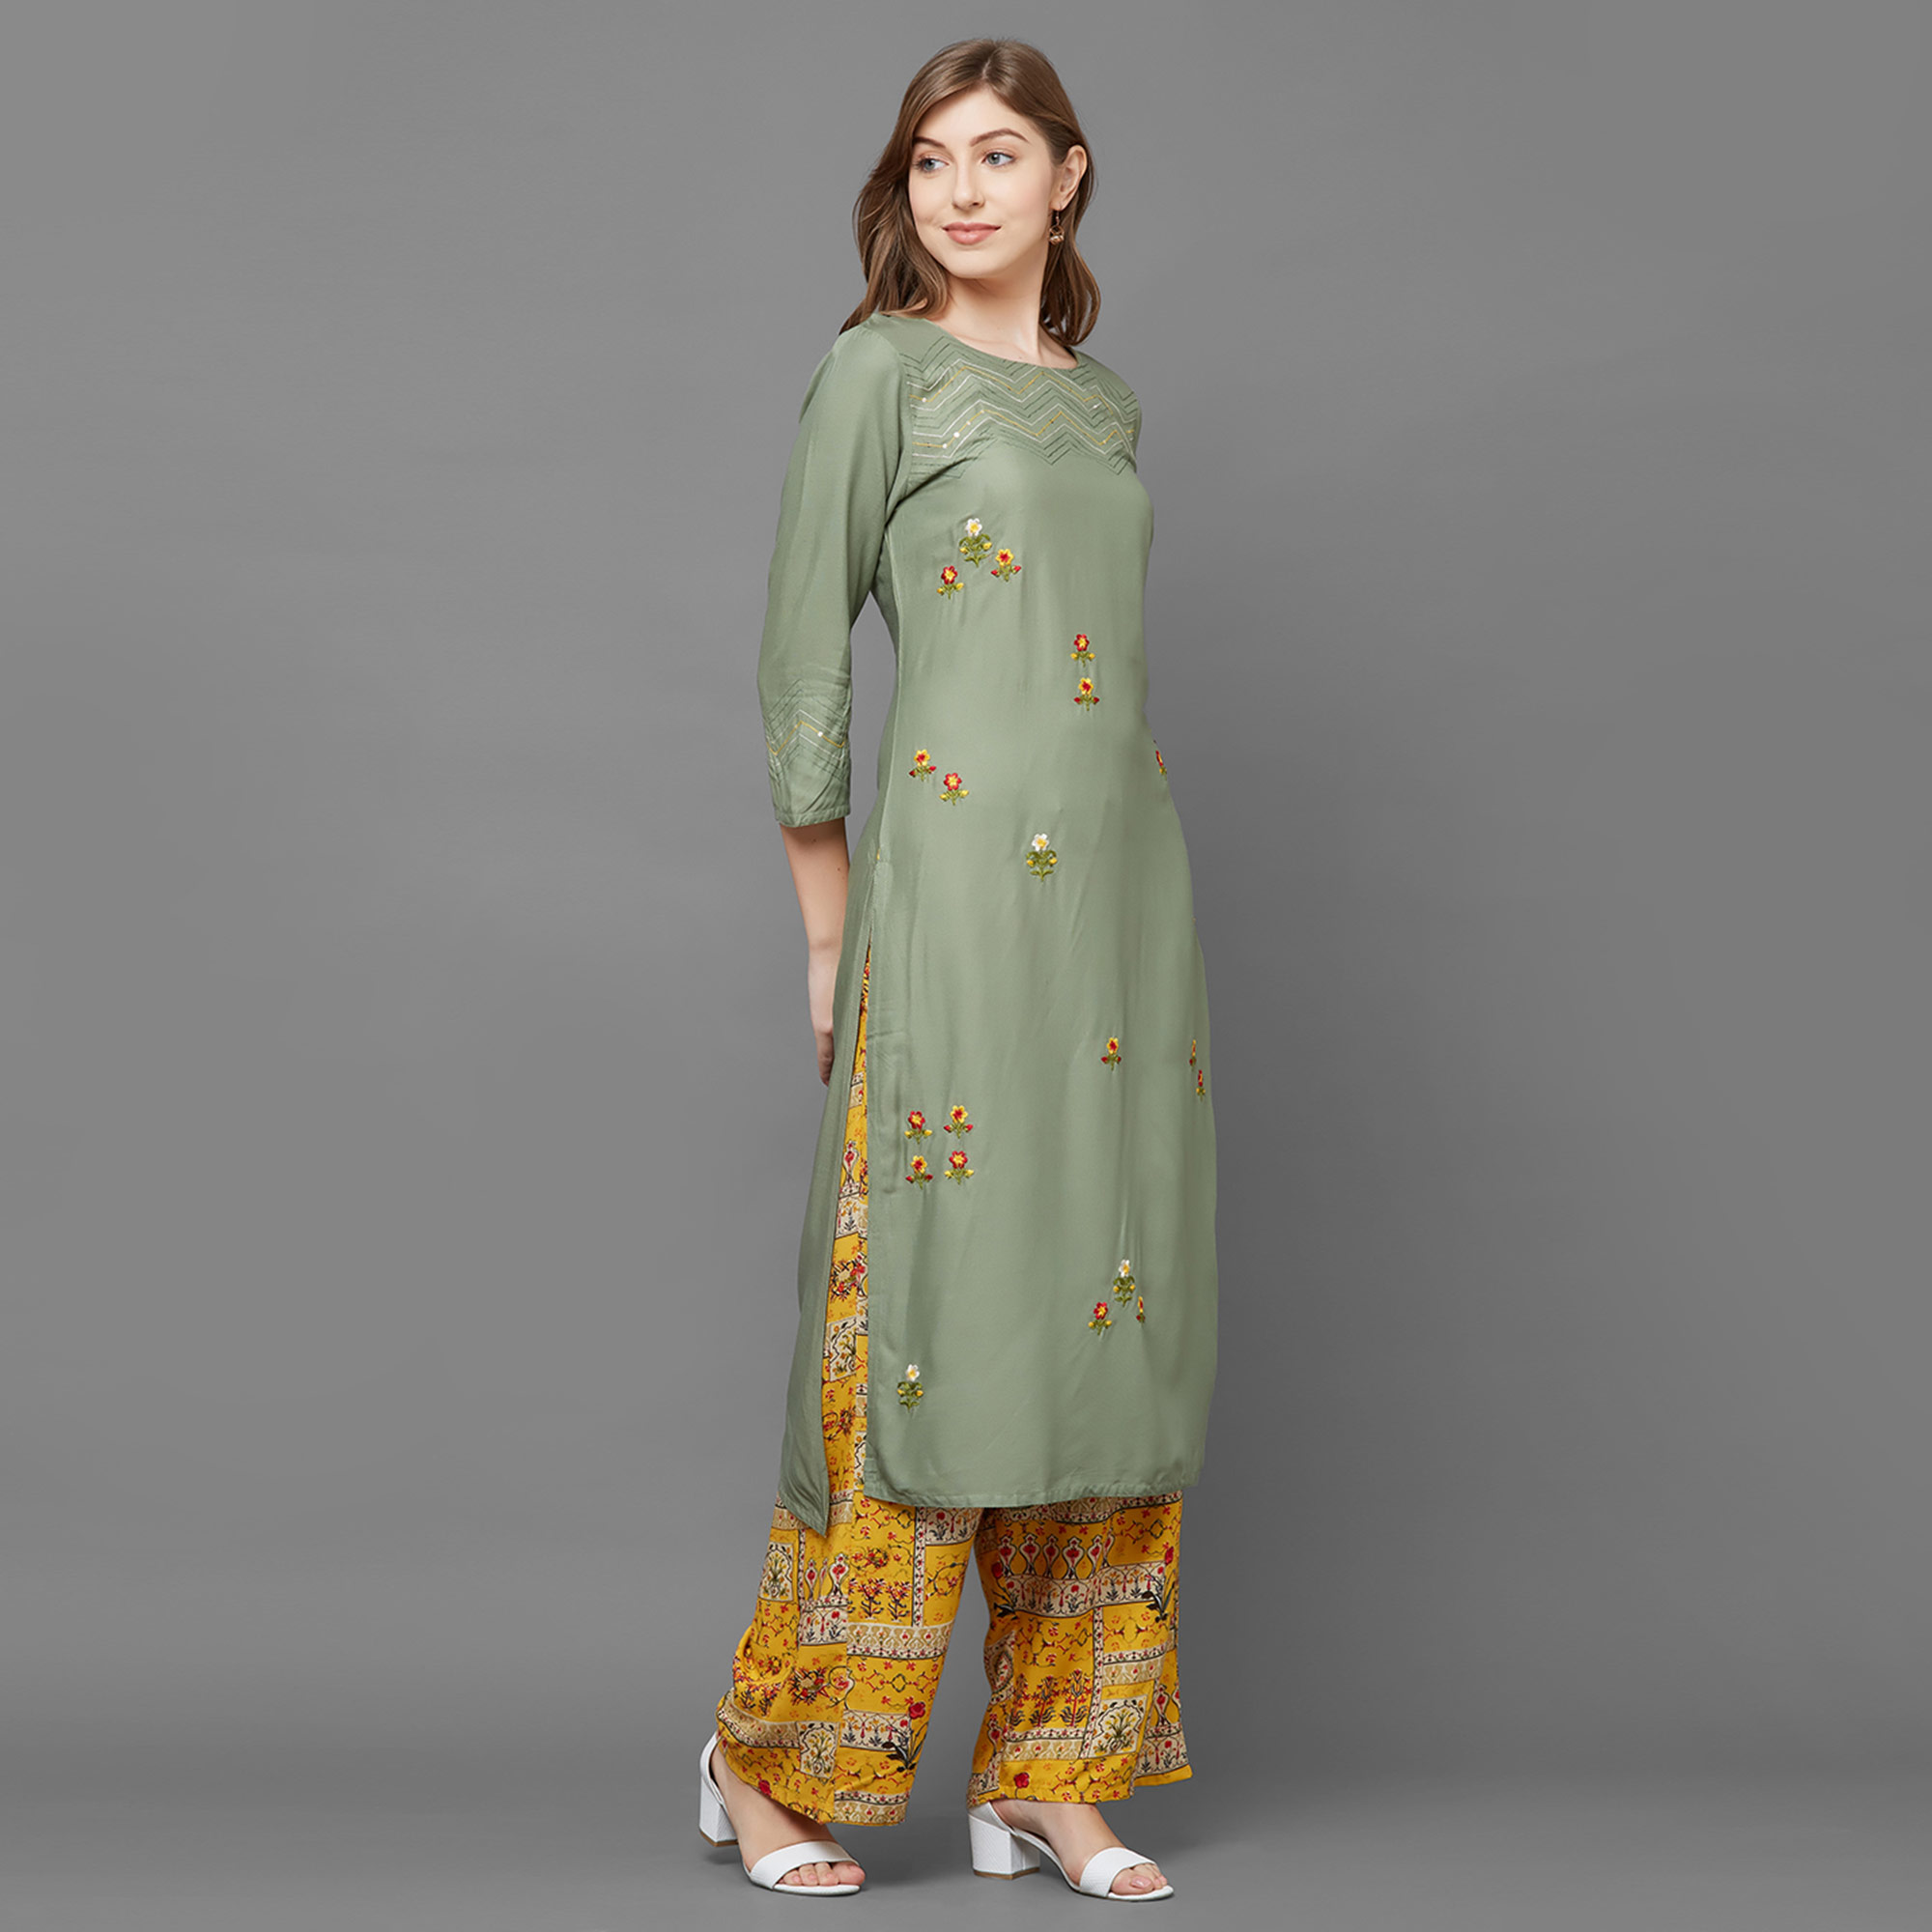 Gorgeous Green Colored Casual Embroidered Cotton Silk Kurti-Palazzo Set